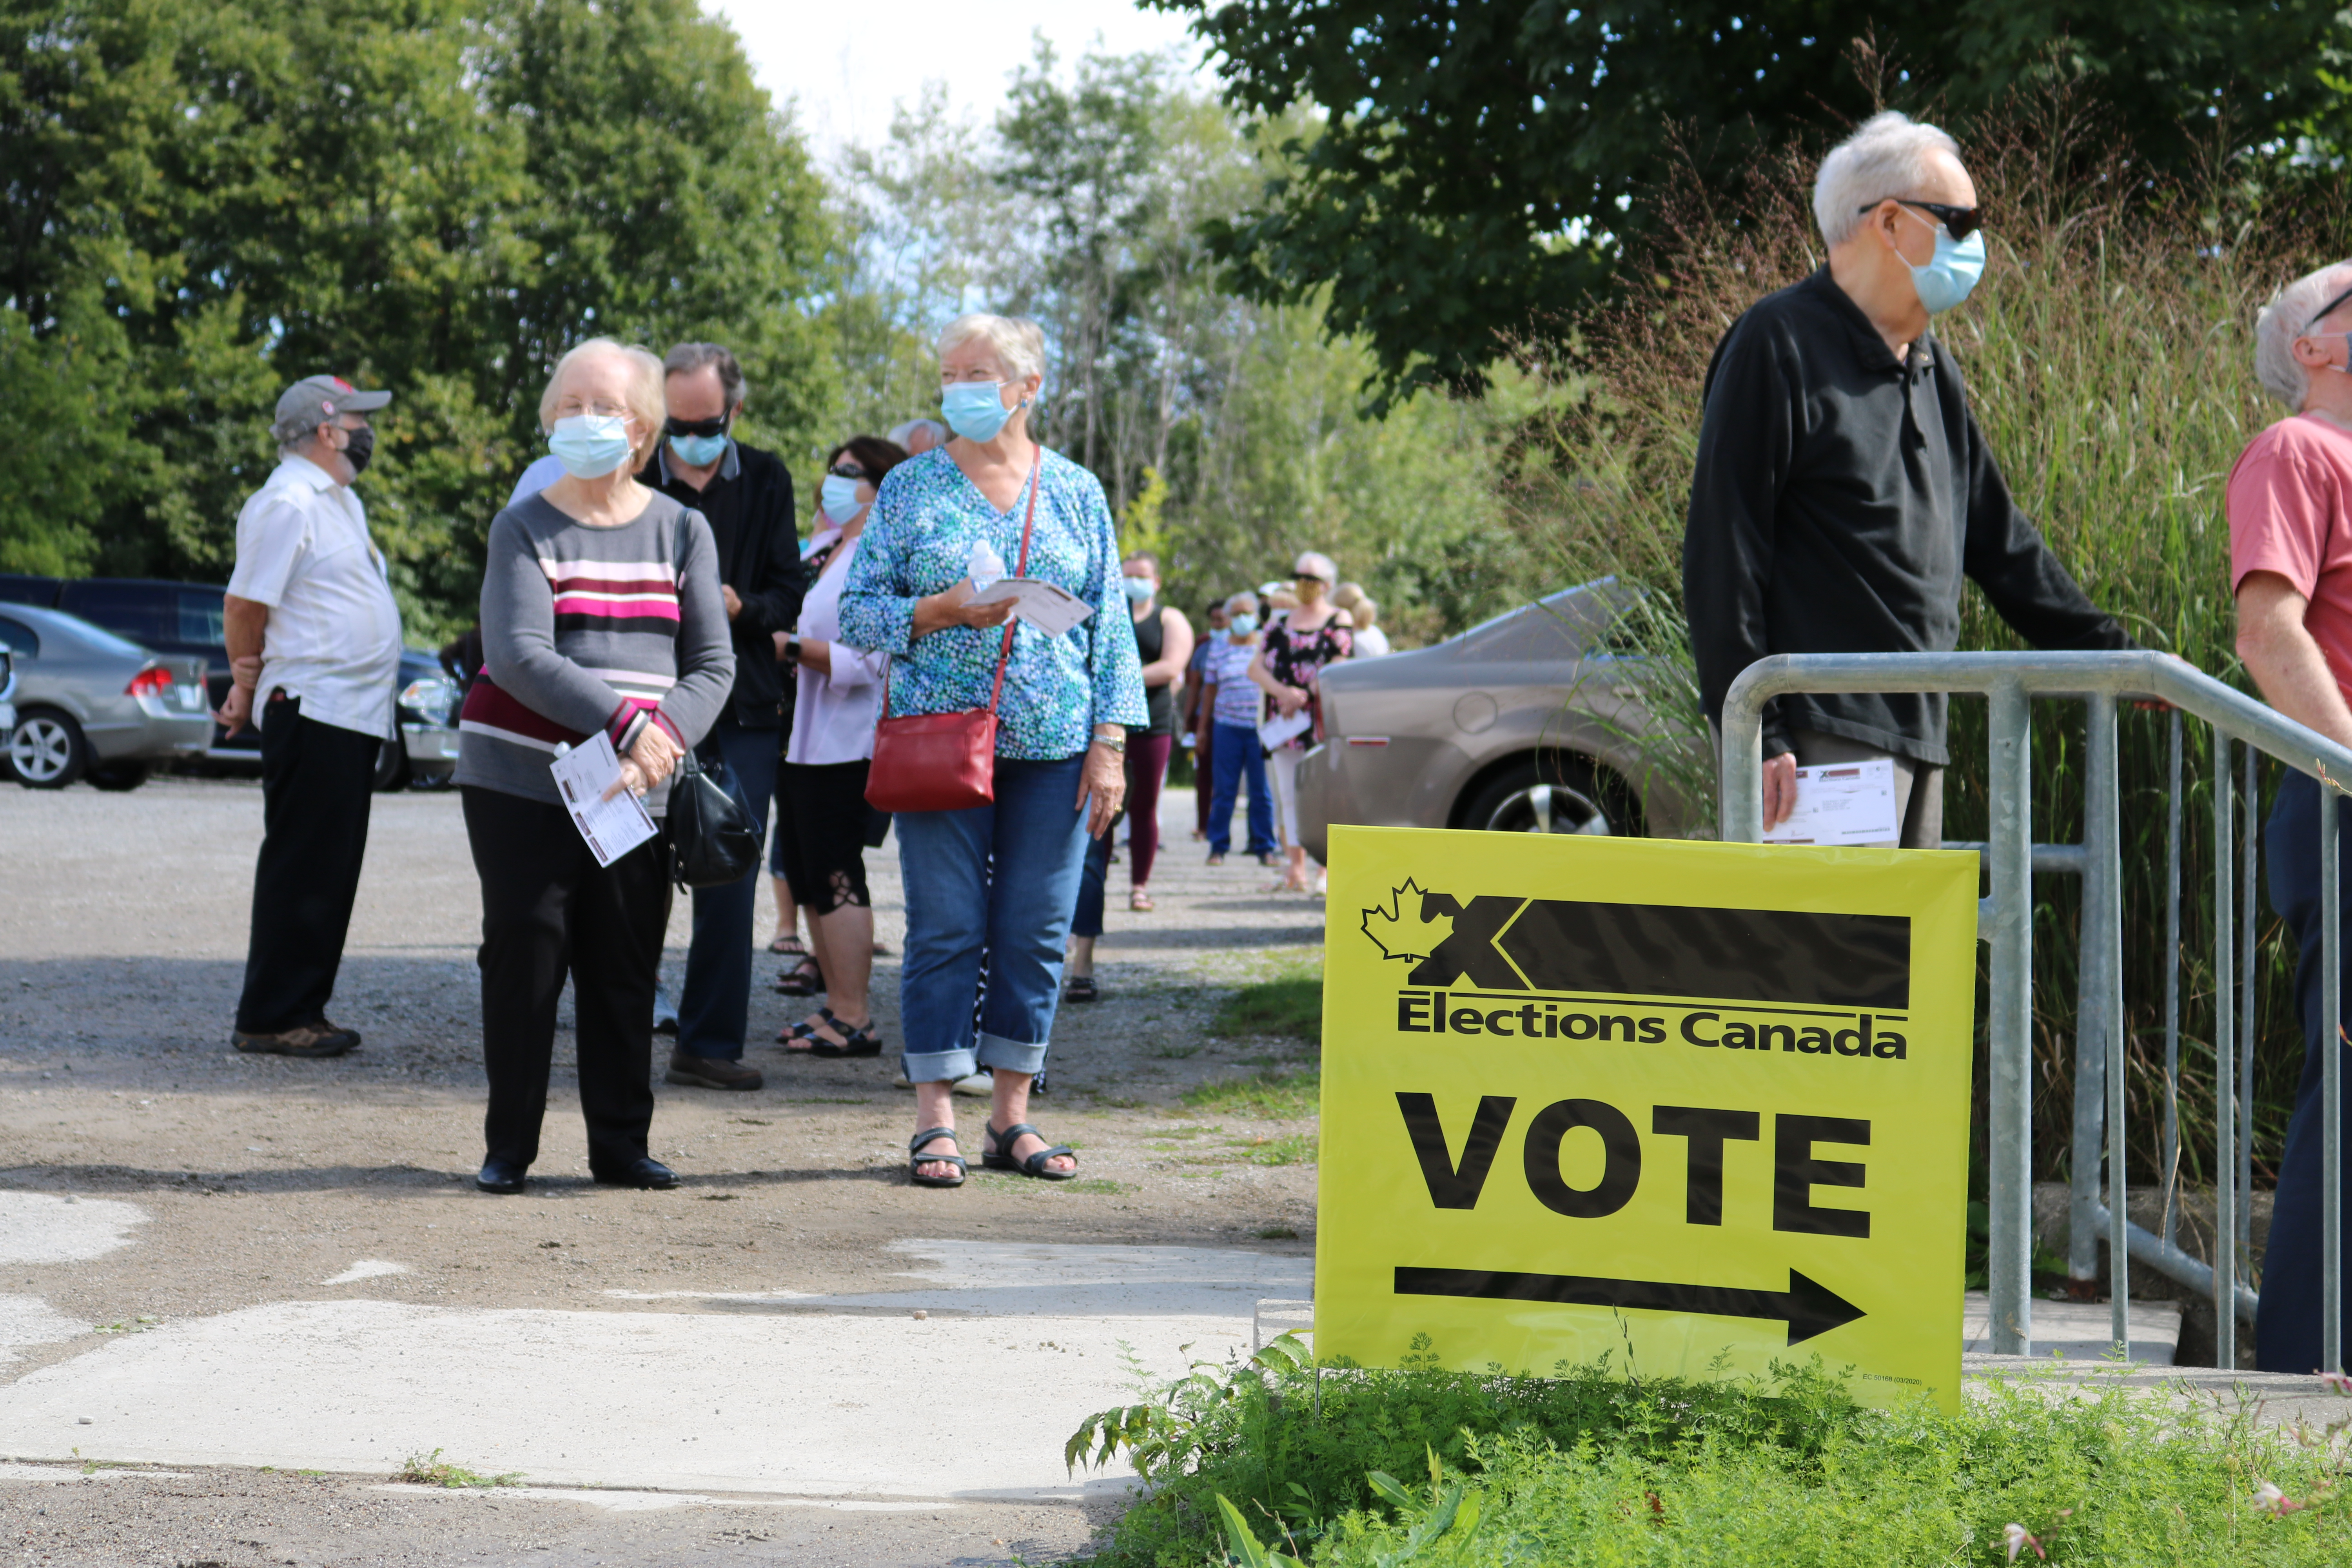 https://globalnews.ca/wp-content/uploads/2021/09/Londoners-lined-up-to-Vote-in-the-Federal-election-at-the-advanced-polling-station-at-Museum-of-Ontario-Archaelogy-at-1600-Attawandaron-Rd.jpg